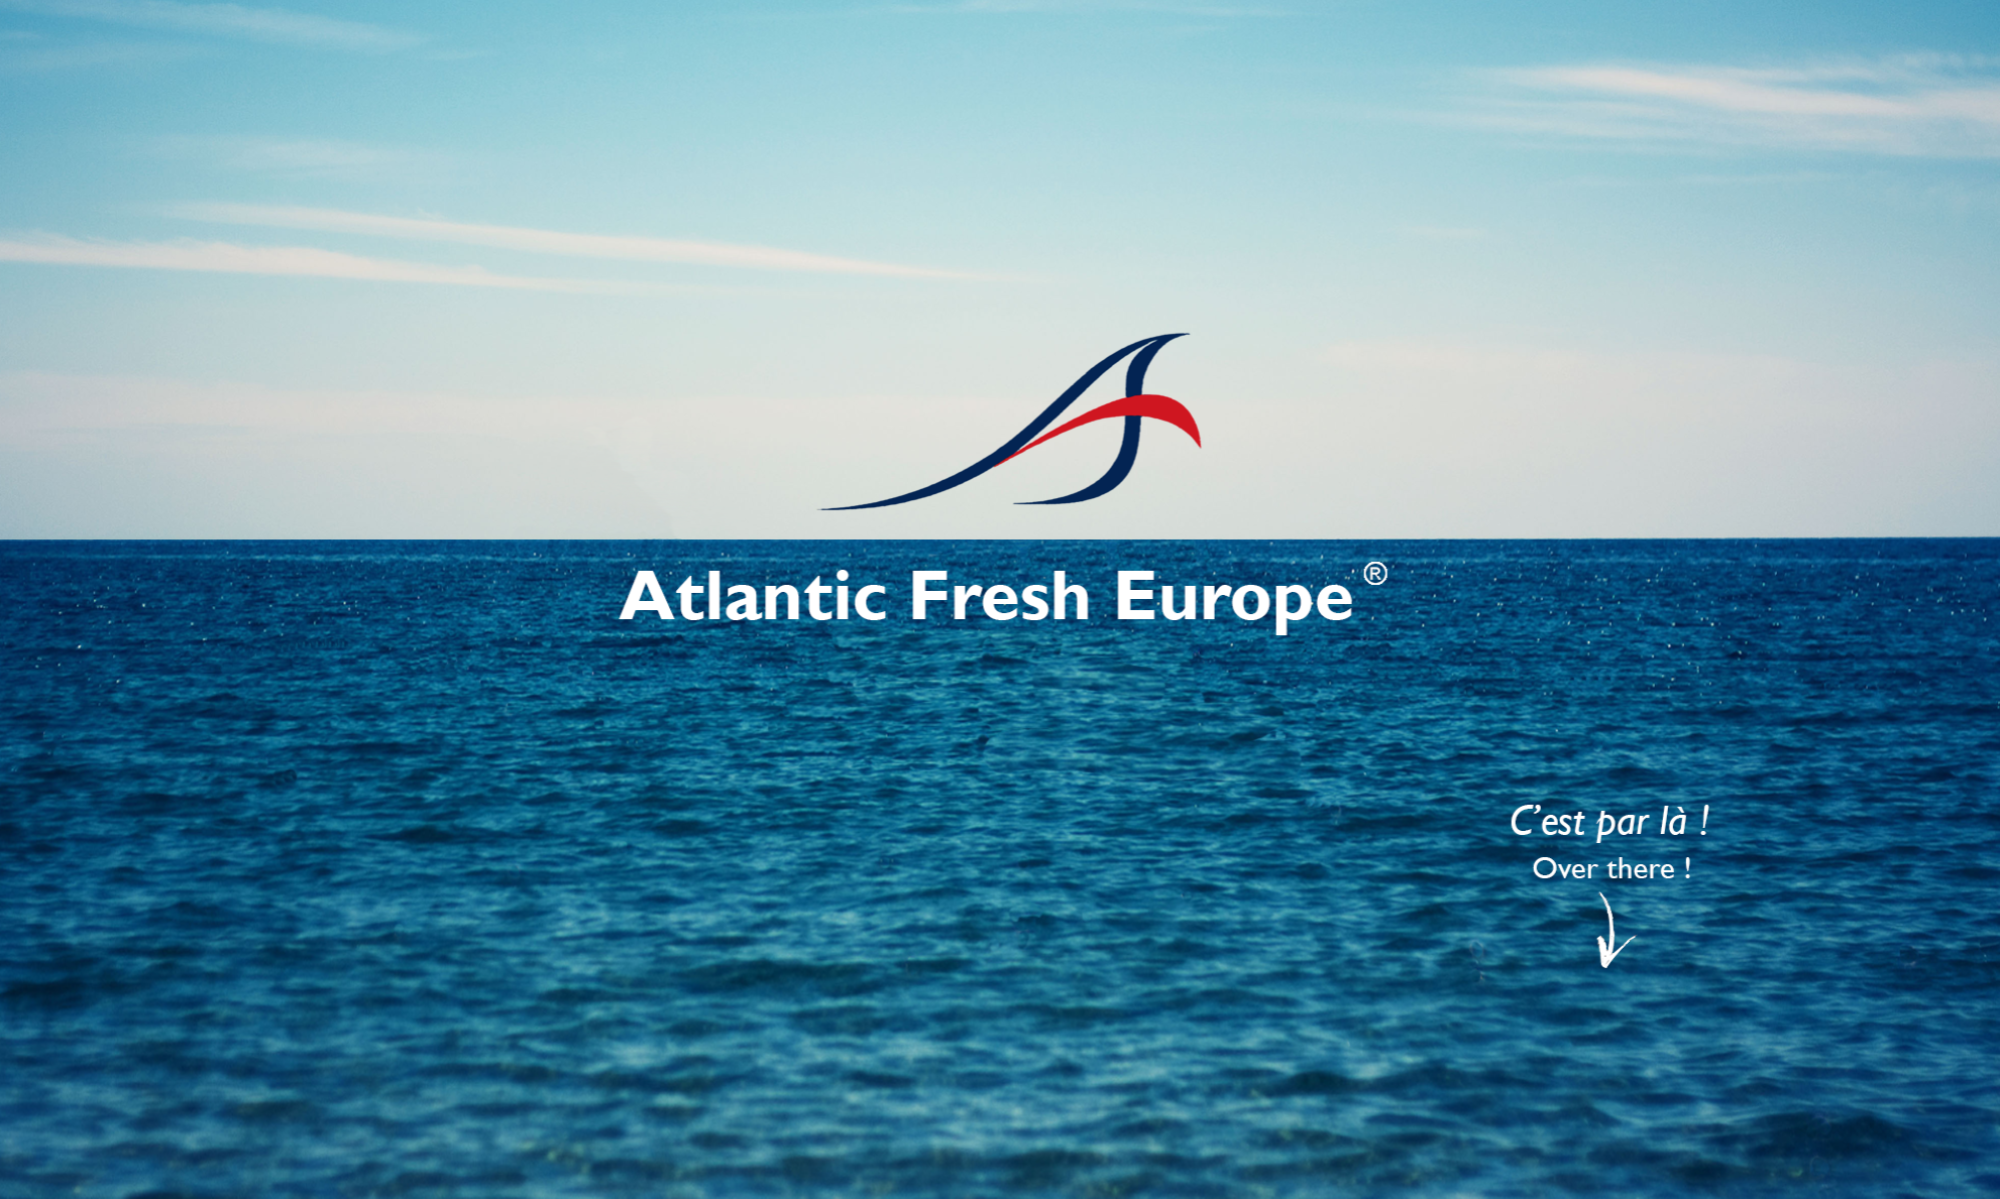 Atlantic Fresh Europe